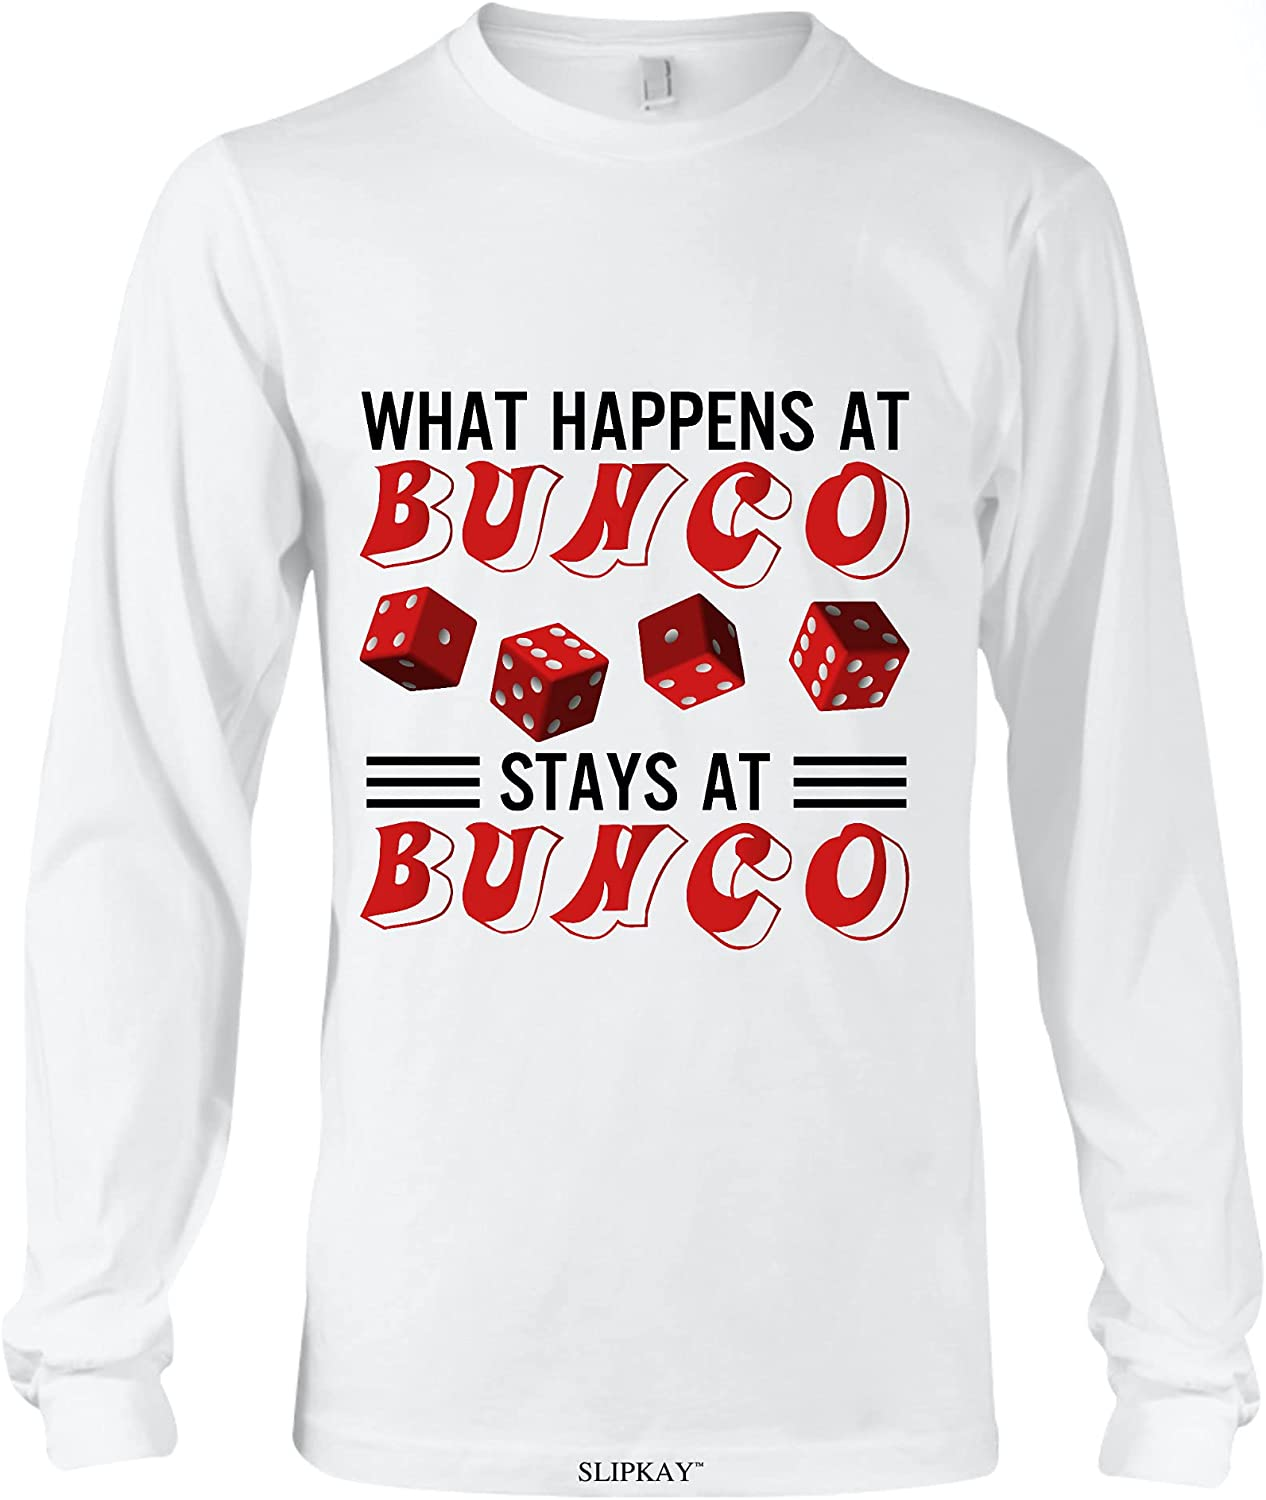 What Happens at Bunco Stays at Bunco Long Sleeve.Gifts